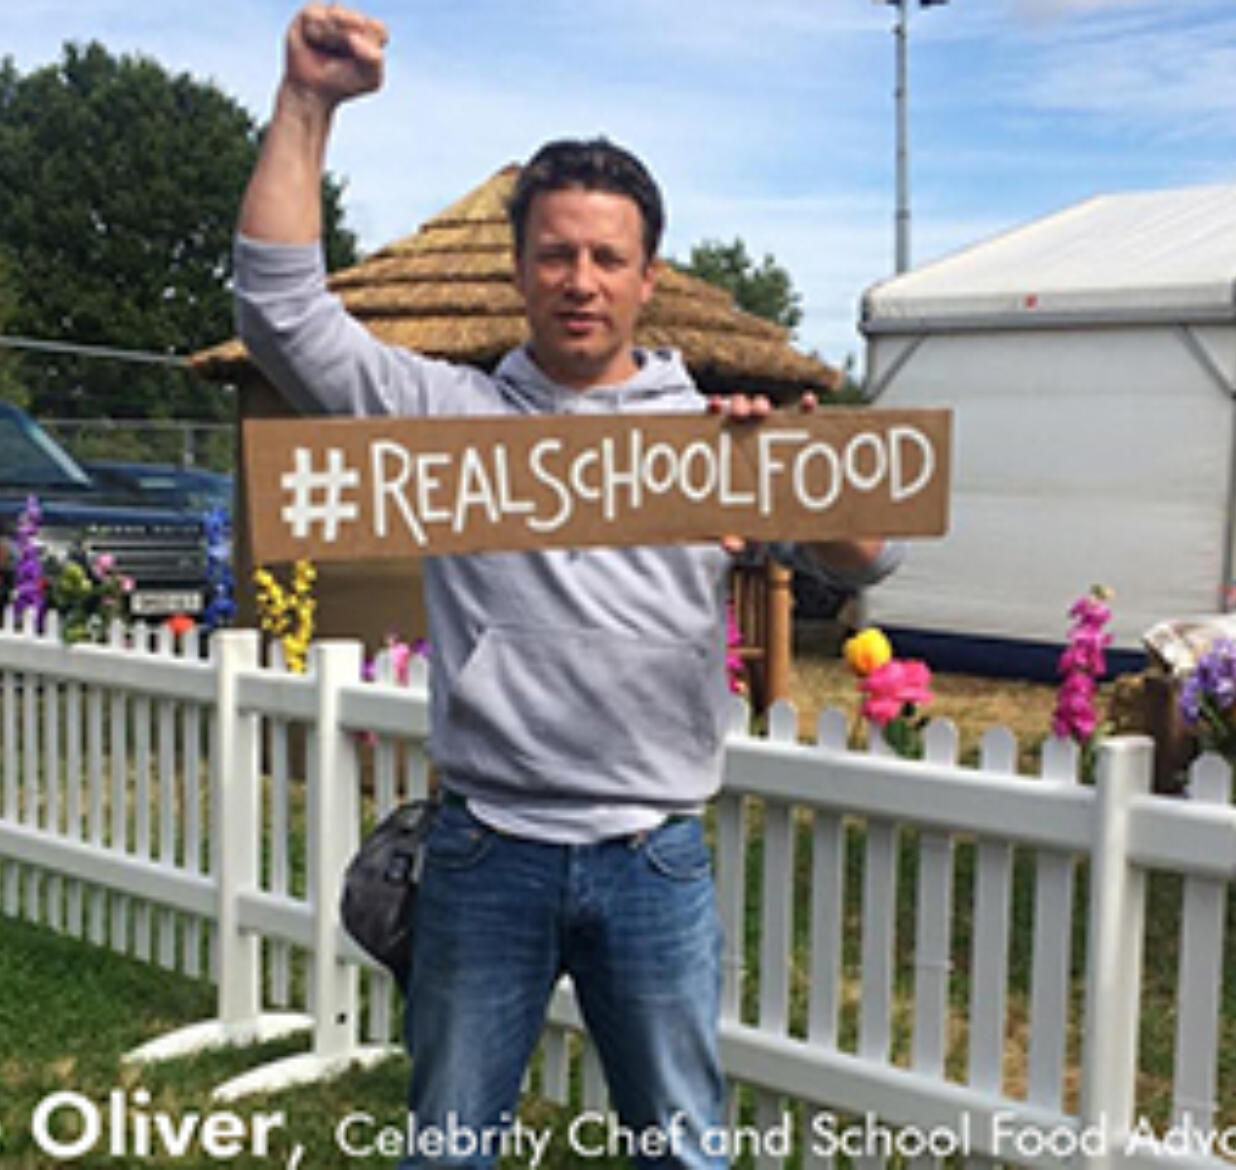 Celebrities and the Public Unite to Support #RealSchoolFood